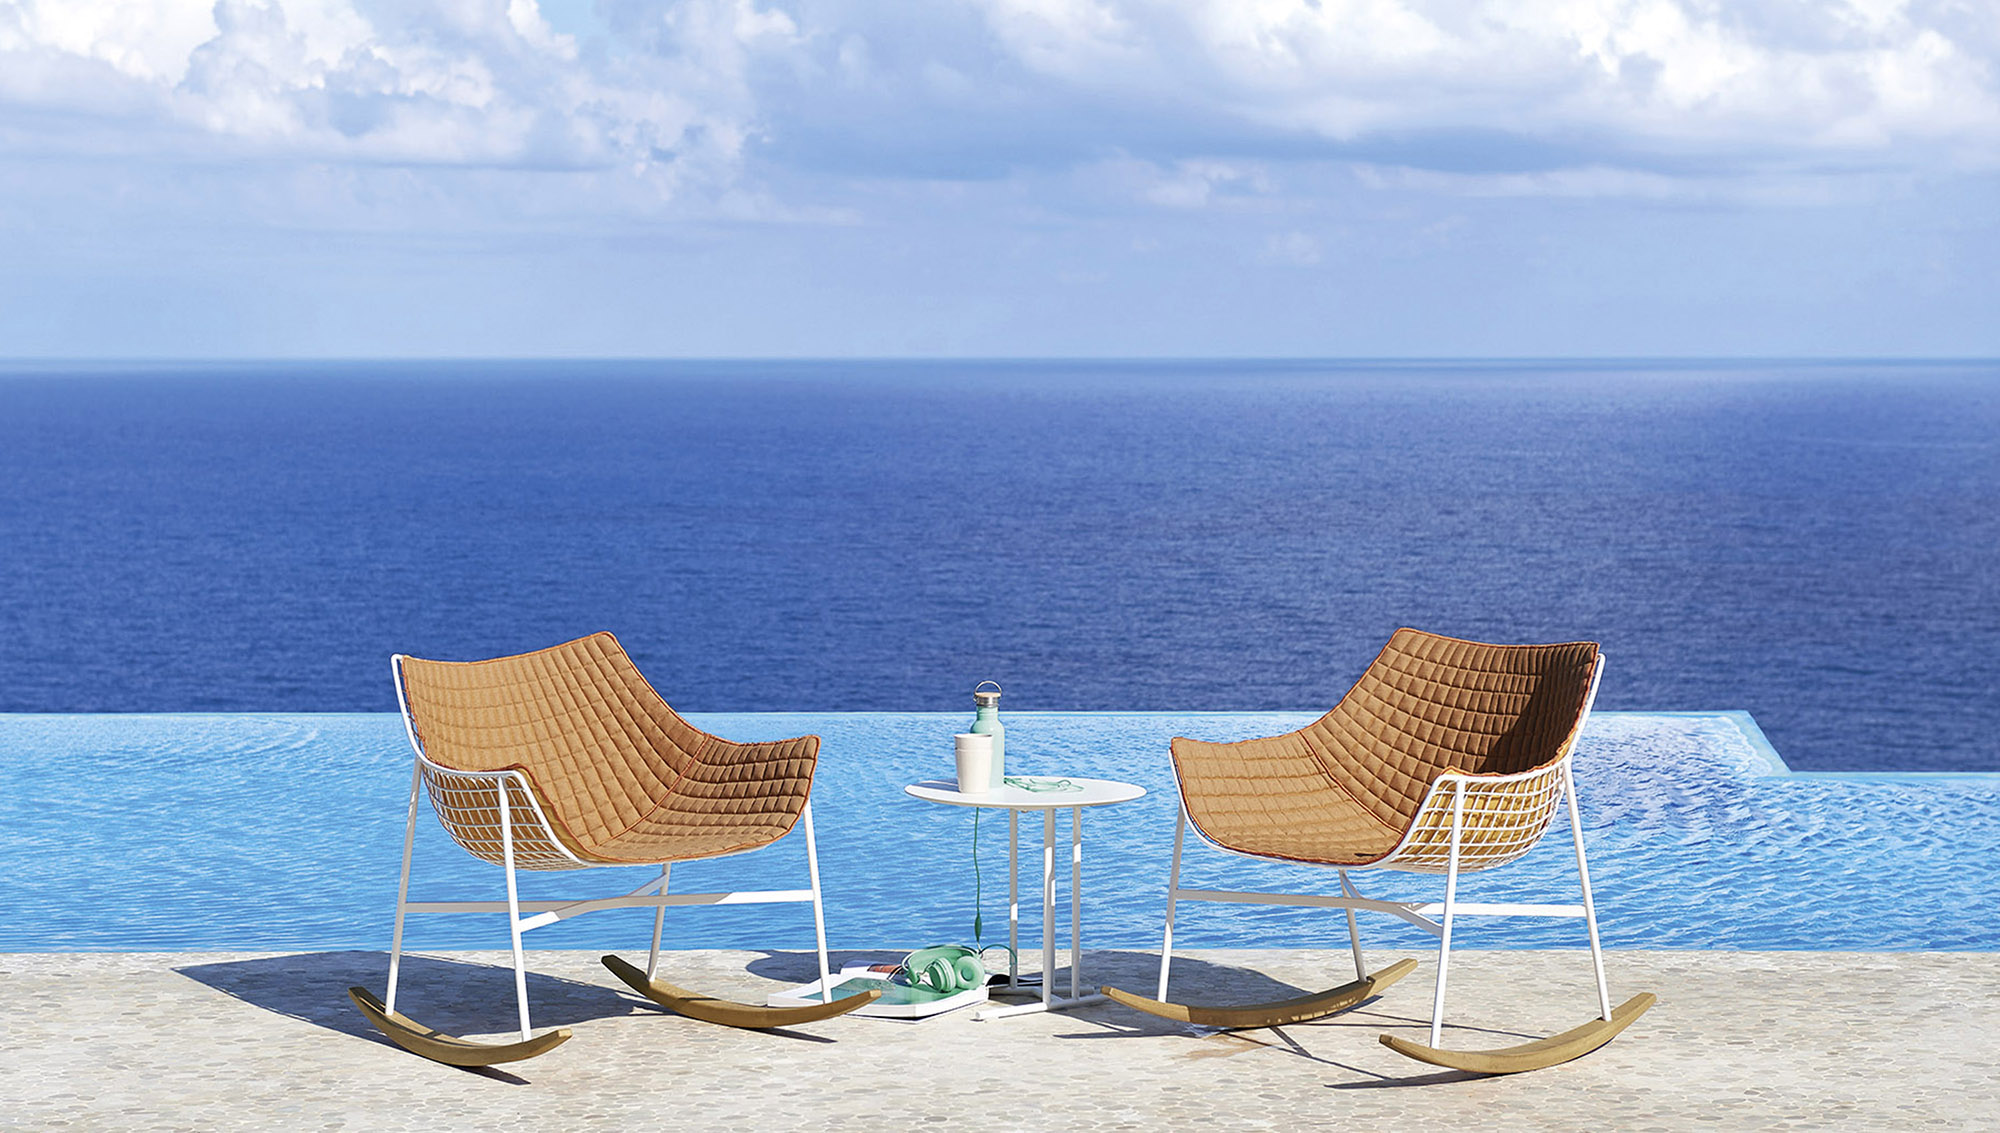 Interior Design Outdoor Furniture And Contract Furniture Design Made In Italy Italian Furniture Design Modern Furniture Online